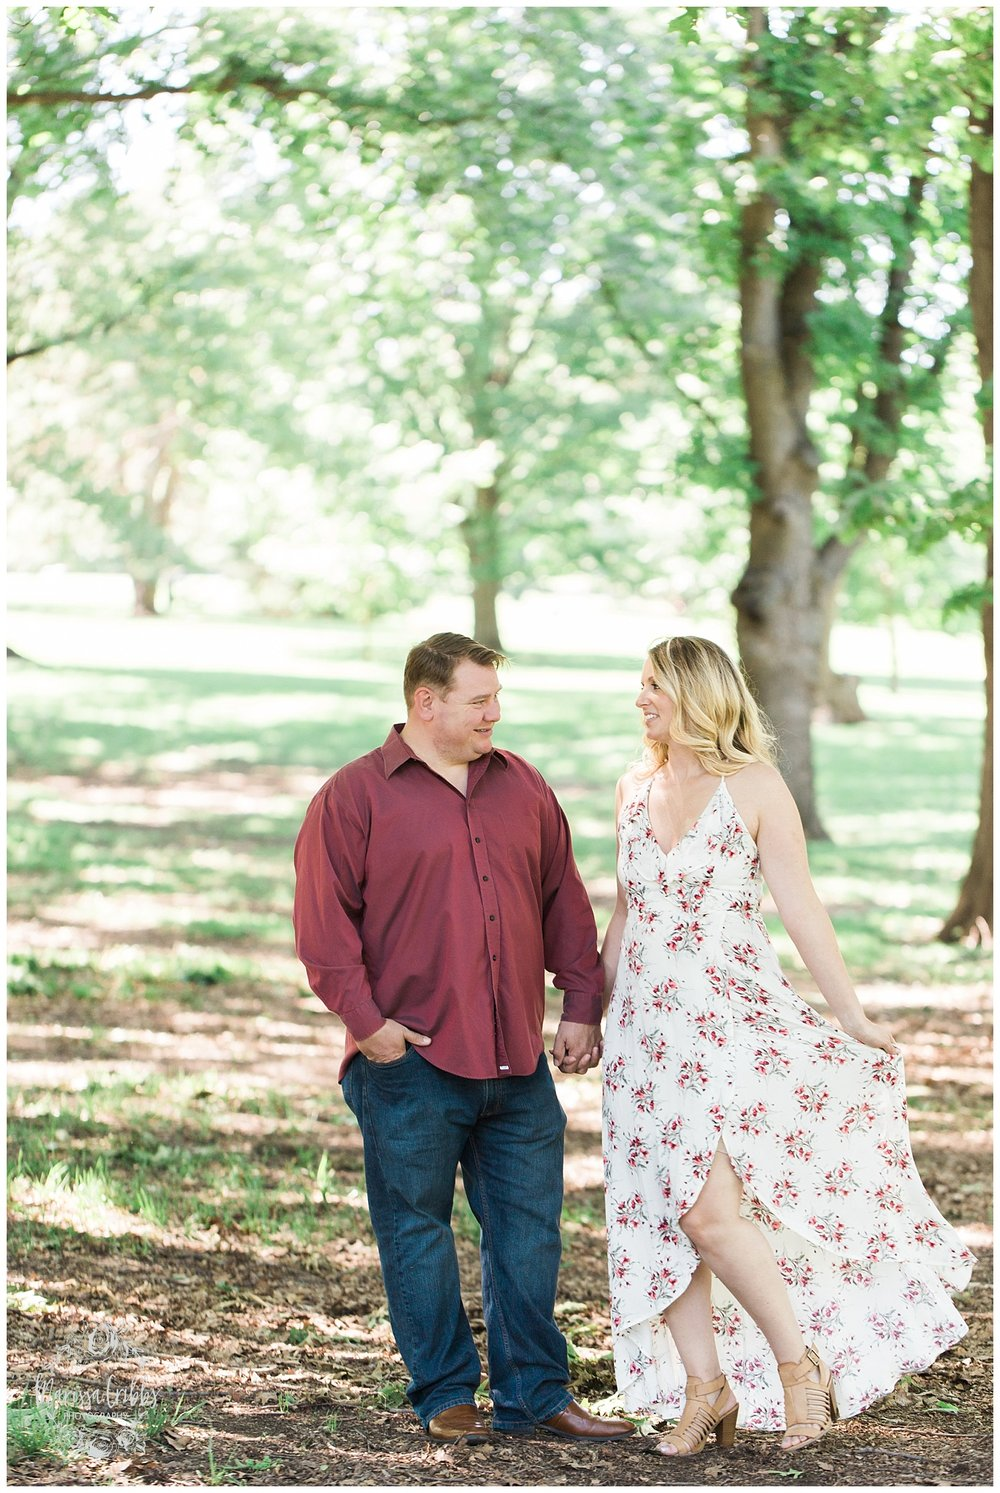 Kristen and Scott | Kansas City Plaza and Loose Park Engagement Photography | Marissa Cribbs Photography_1160.jpg